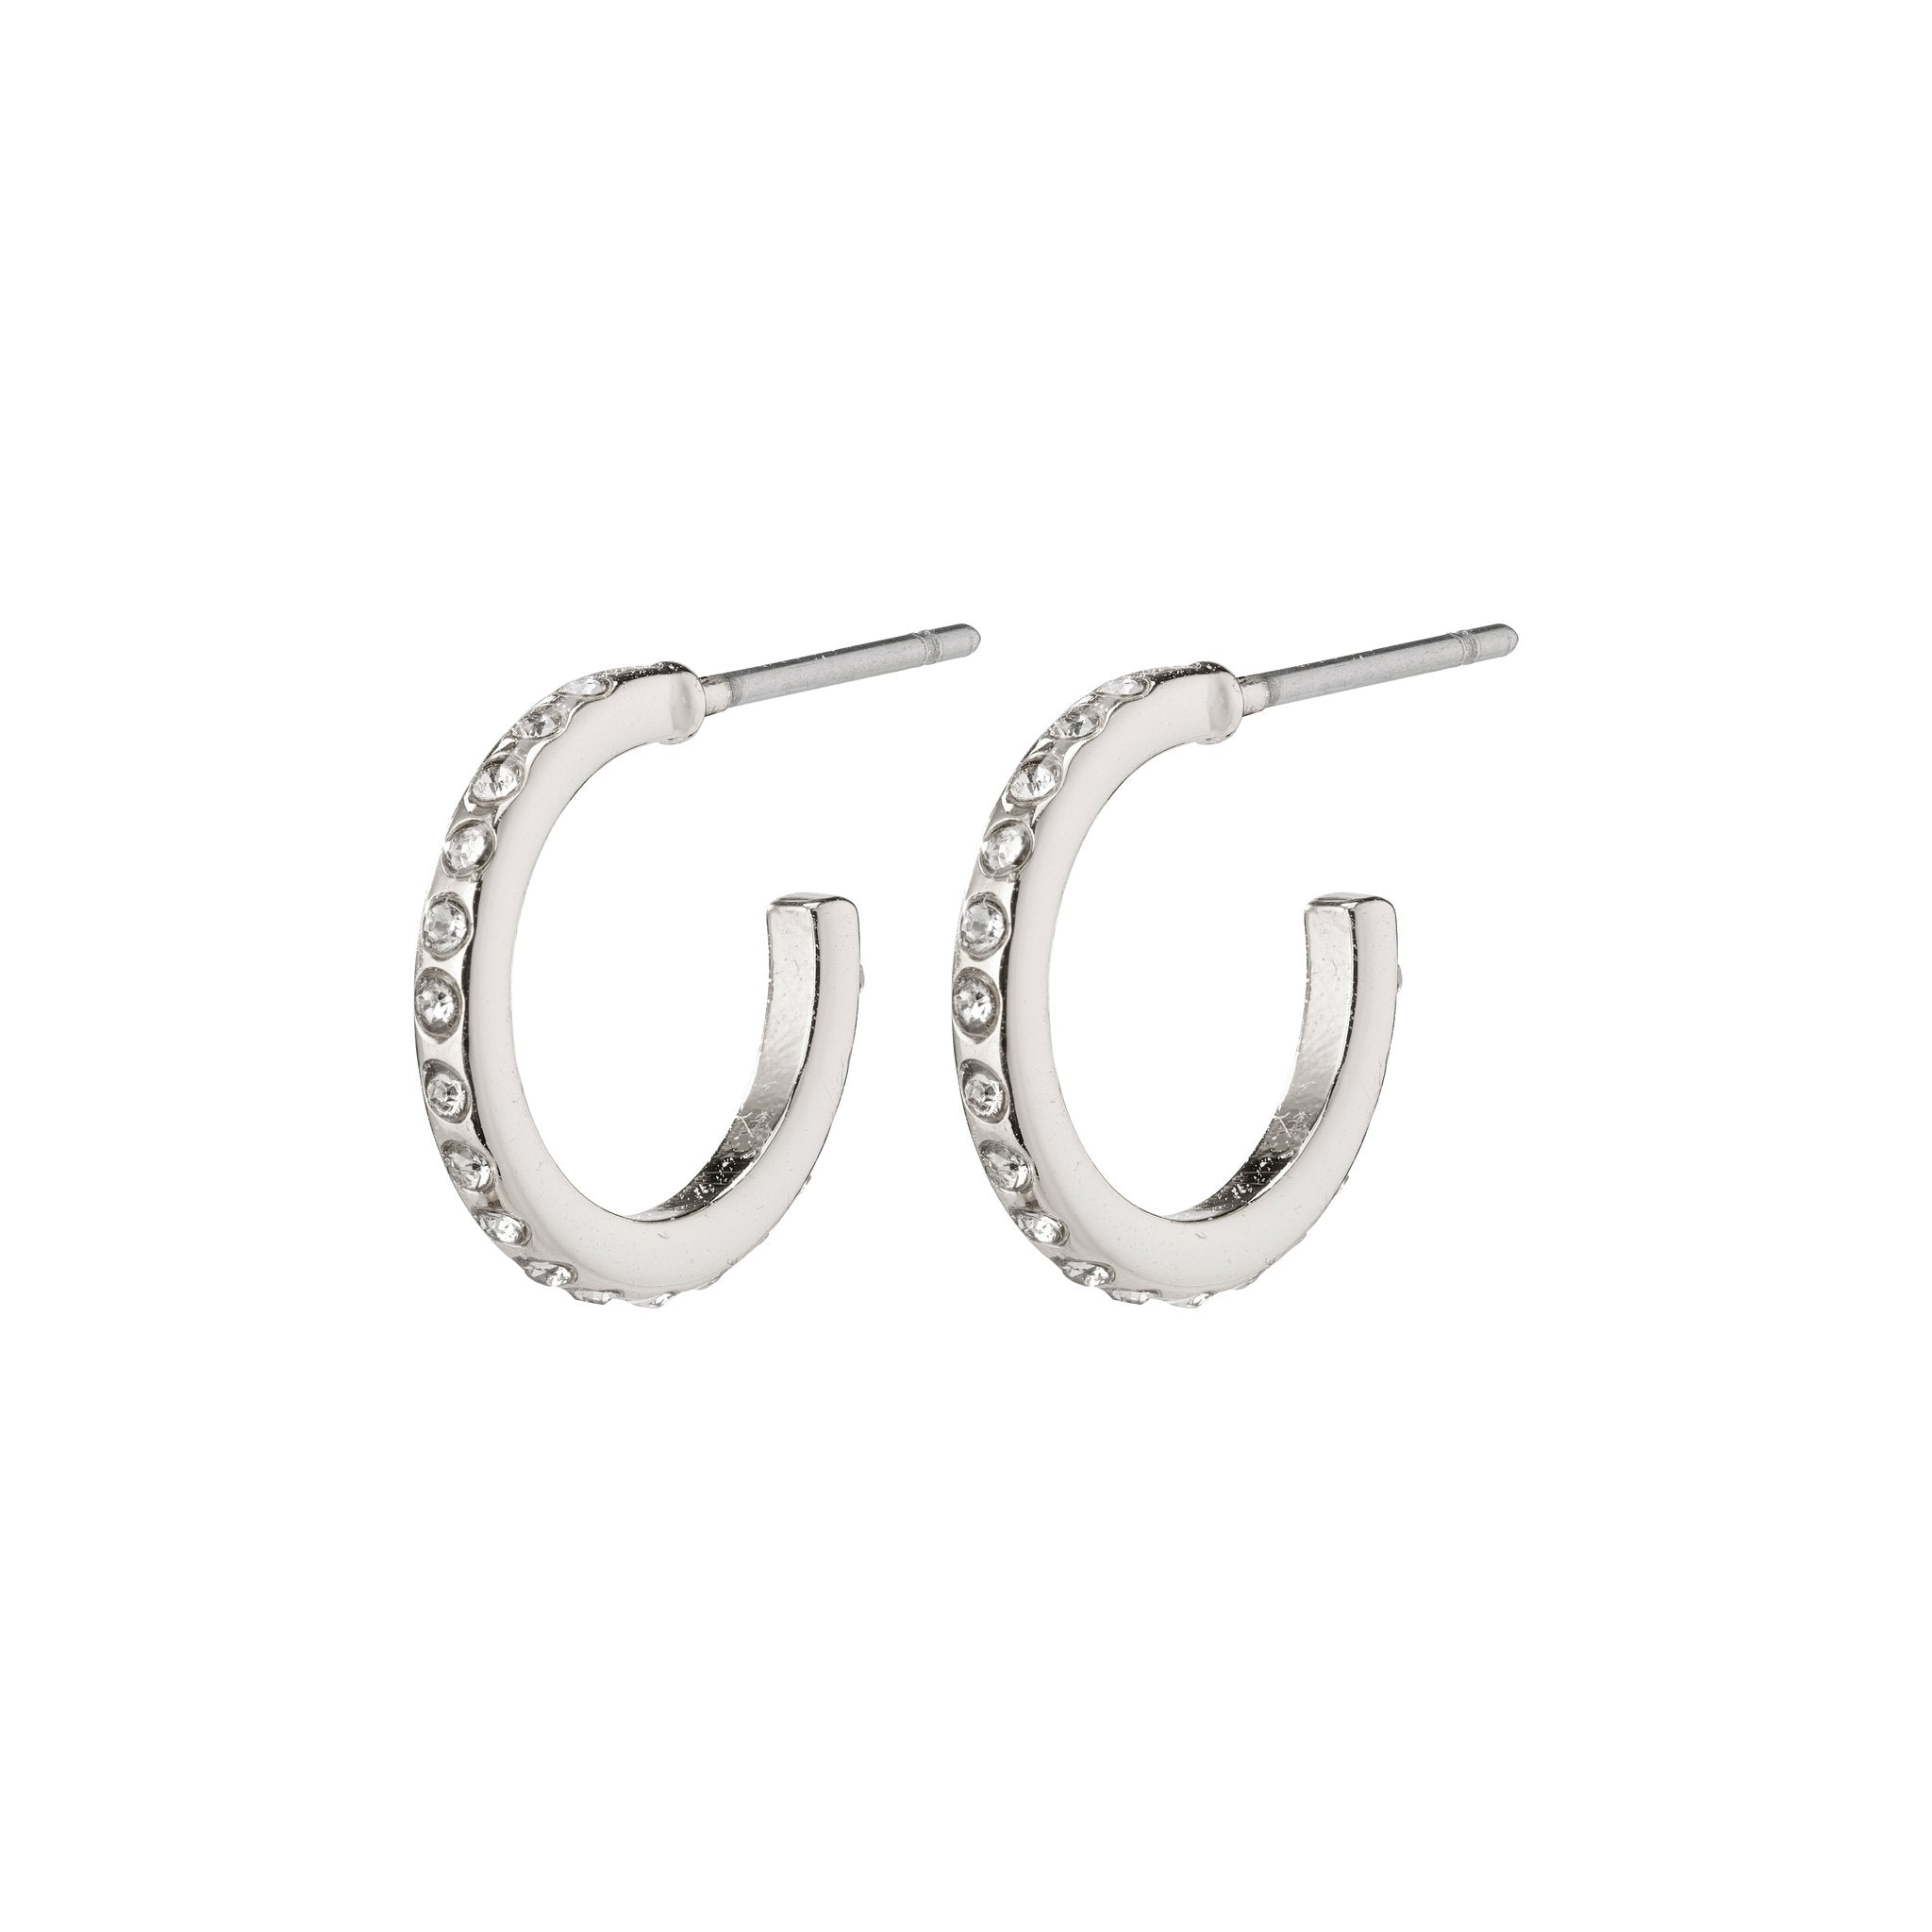 Roberta Pi Earrings - Silver Plated Crystal - 12mm